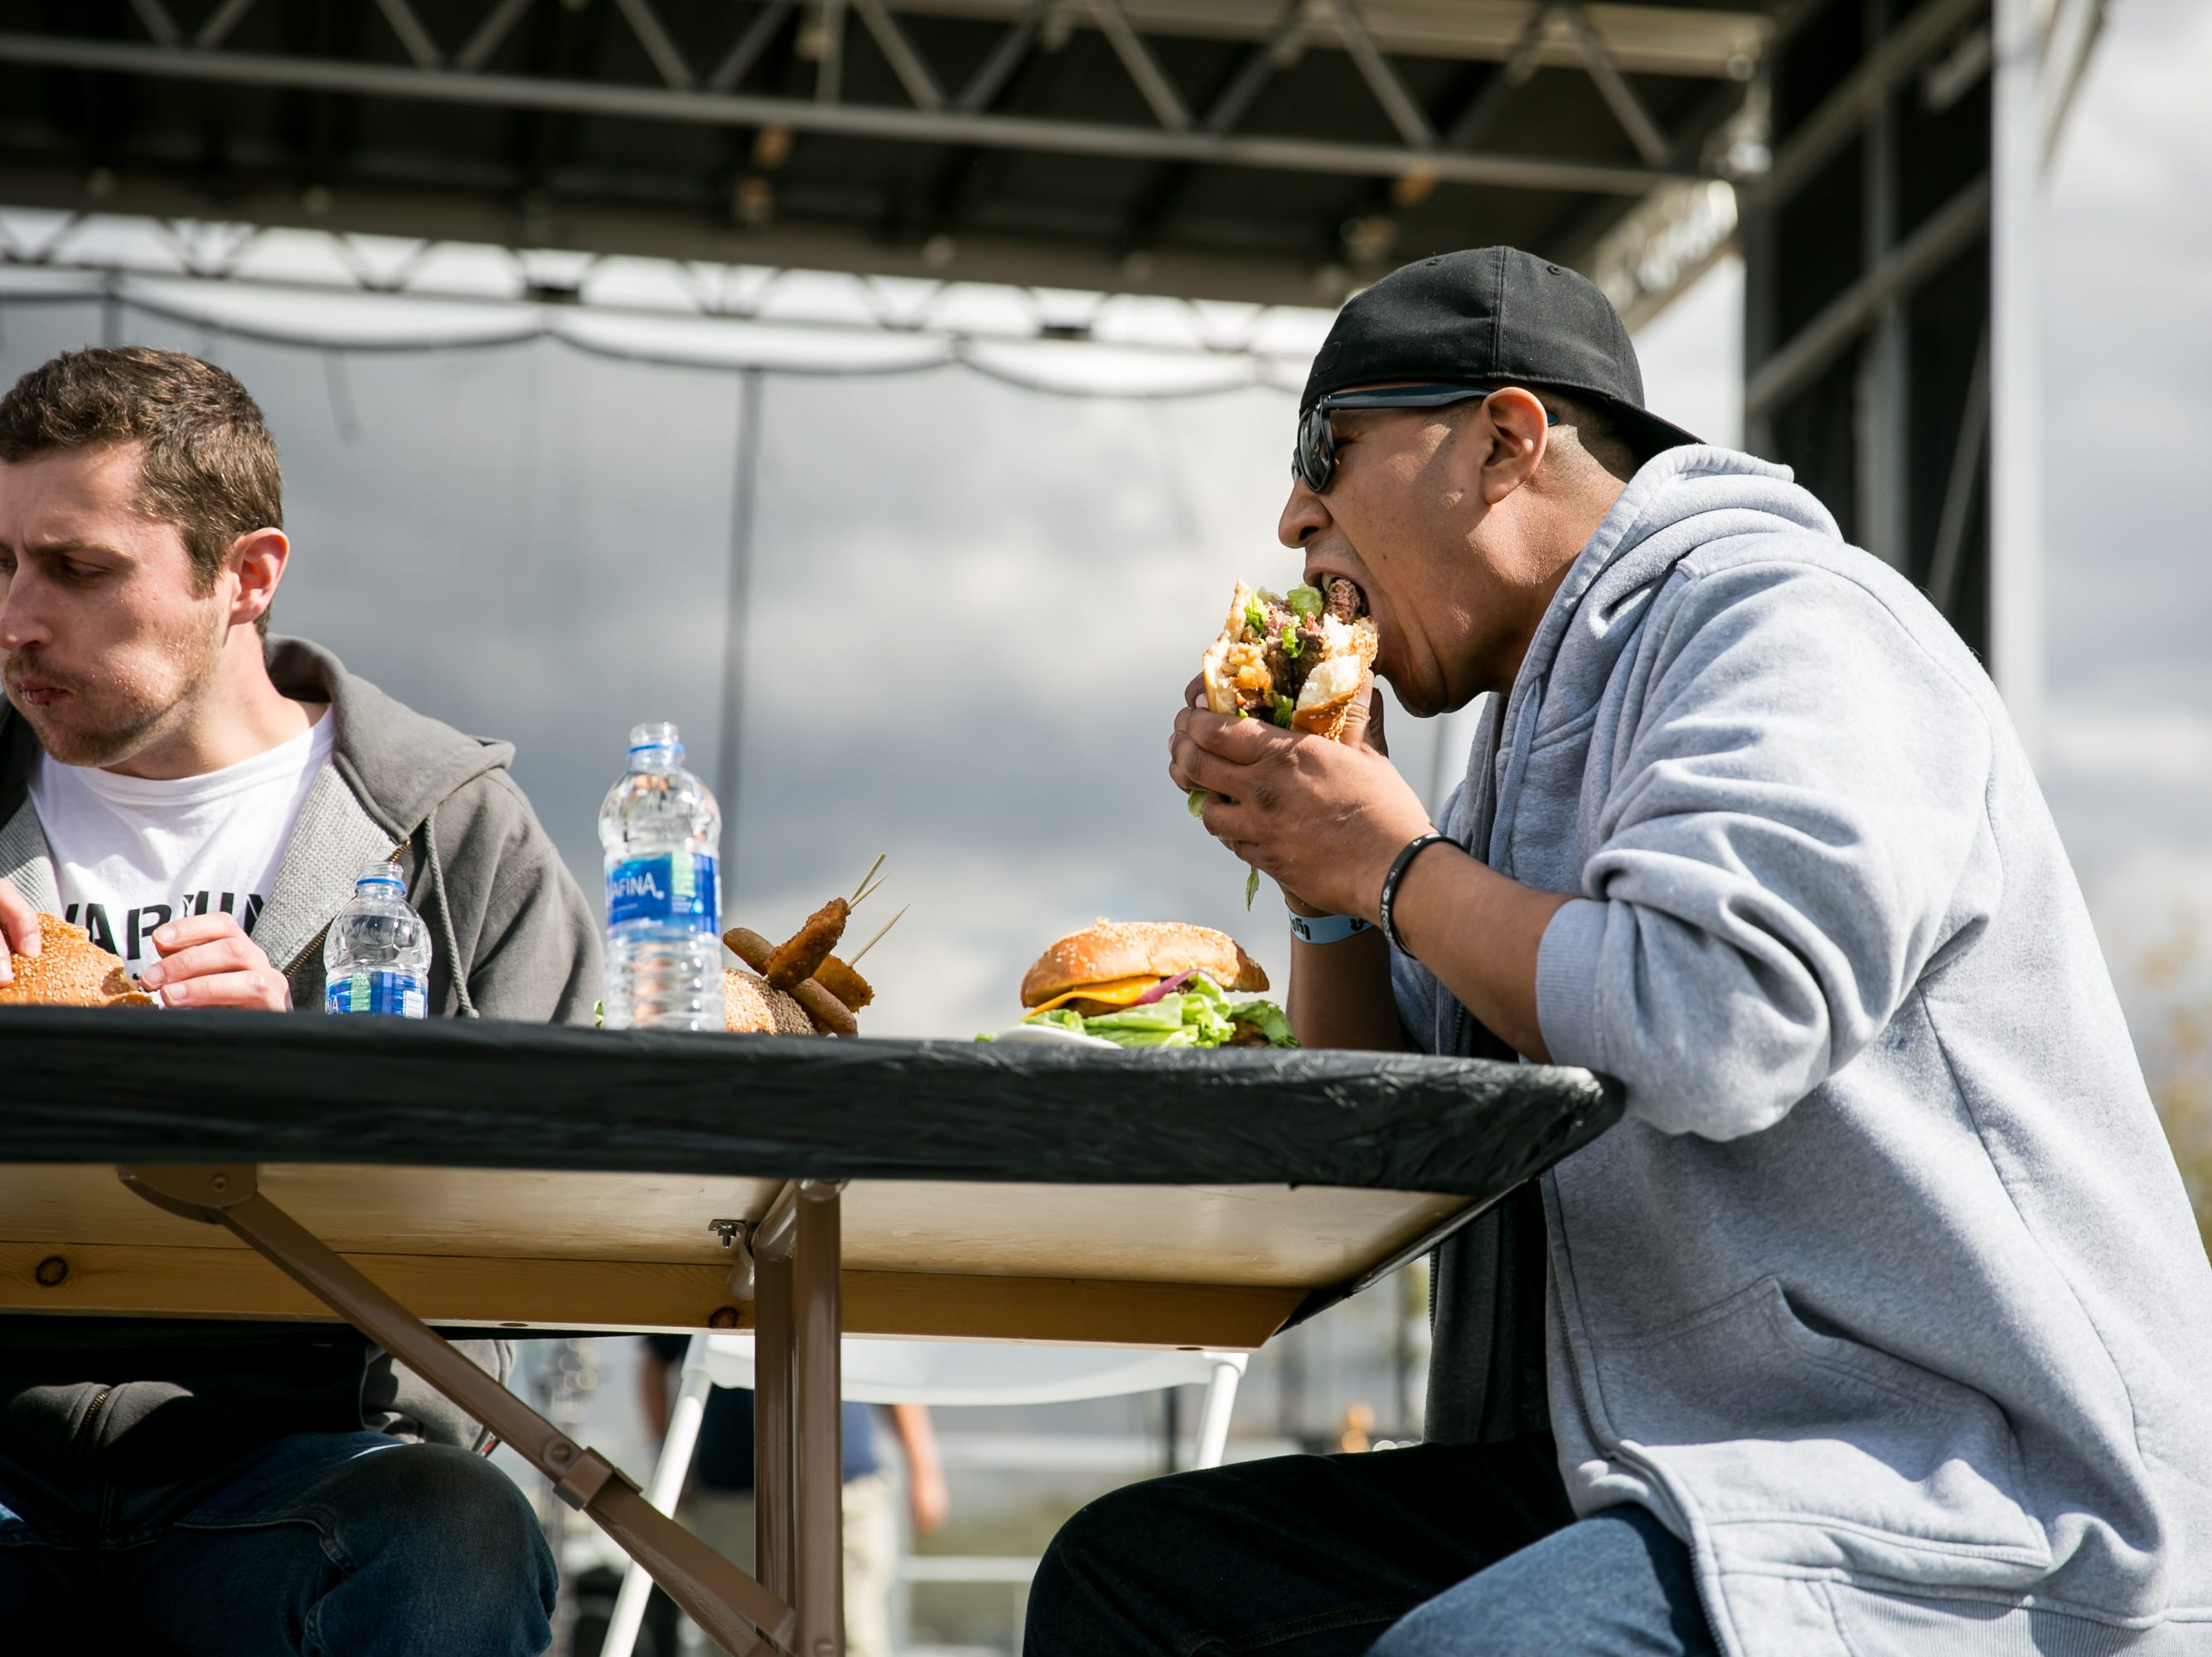 The burger eating contest was daunting during the Street Eats Food Truck Festival at Salt River Fields near Scottsdale on Feb. 17, 2019.